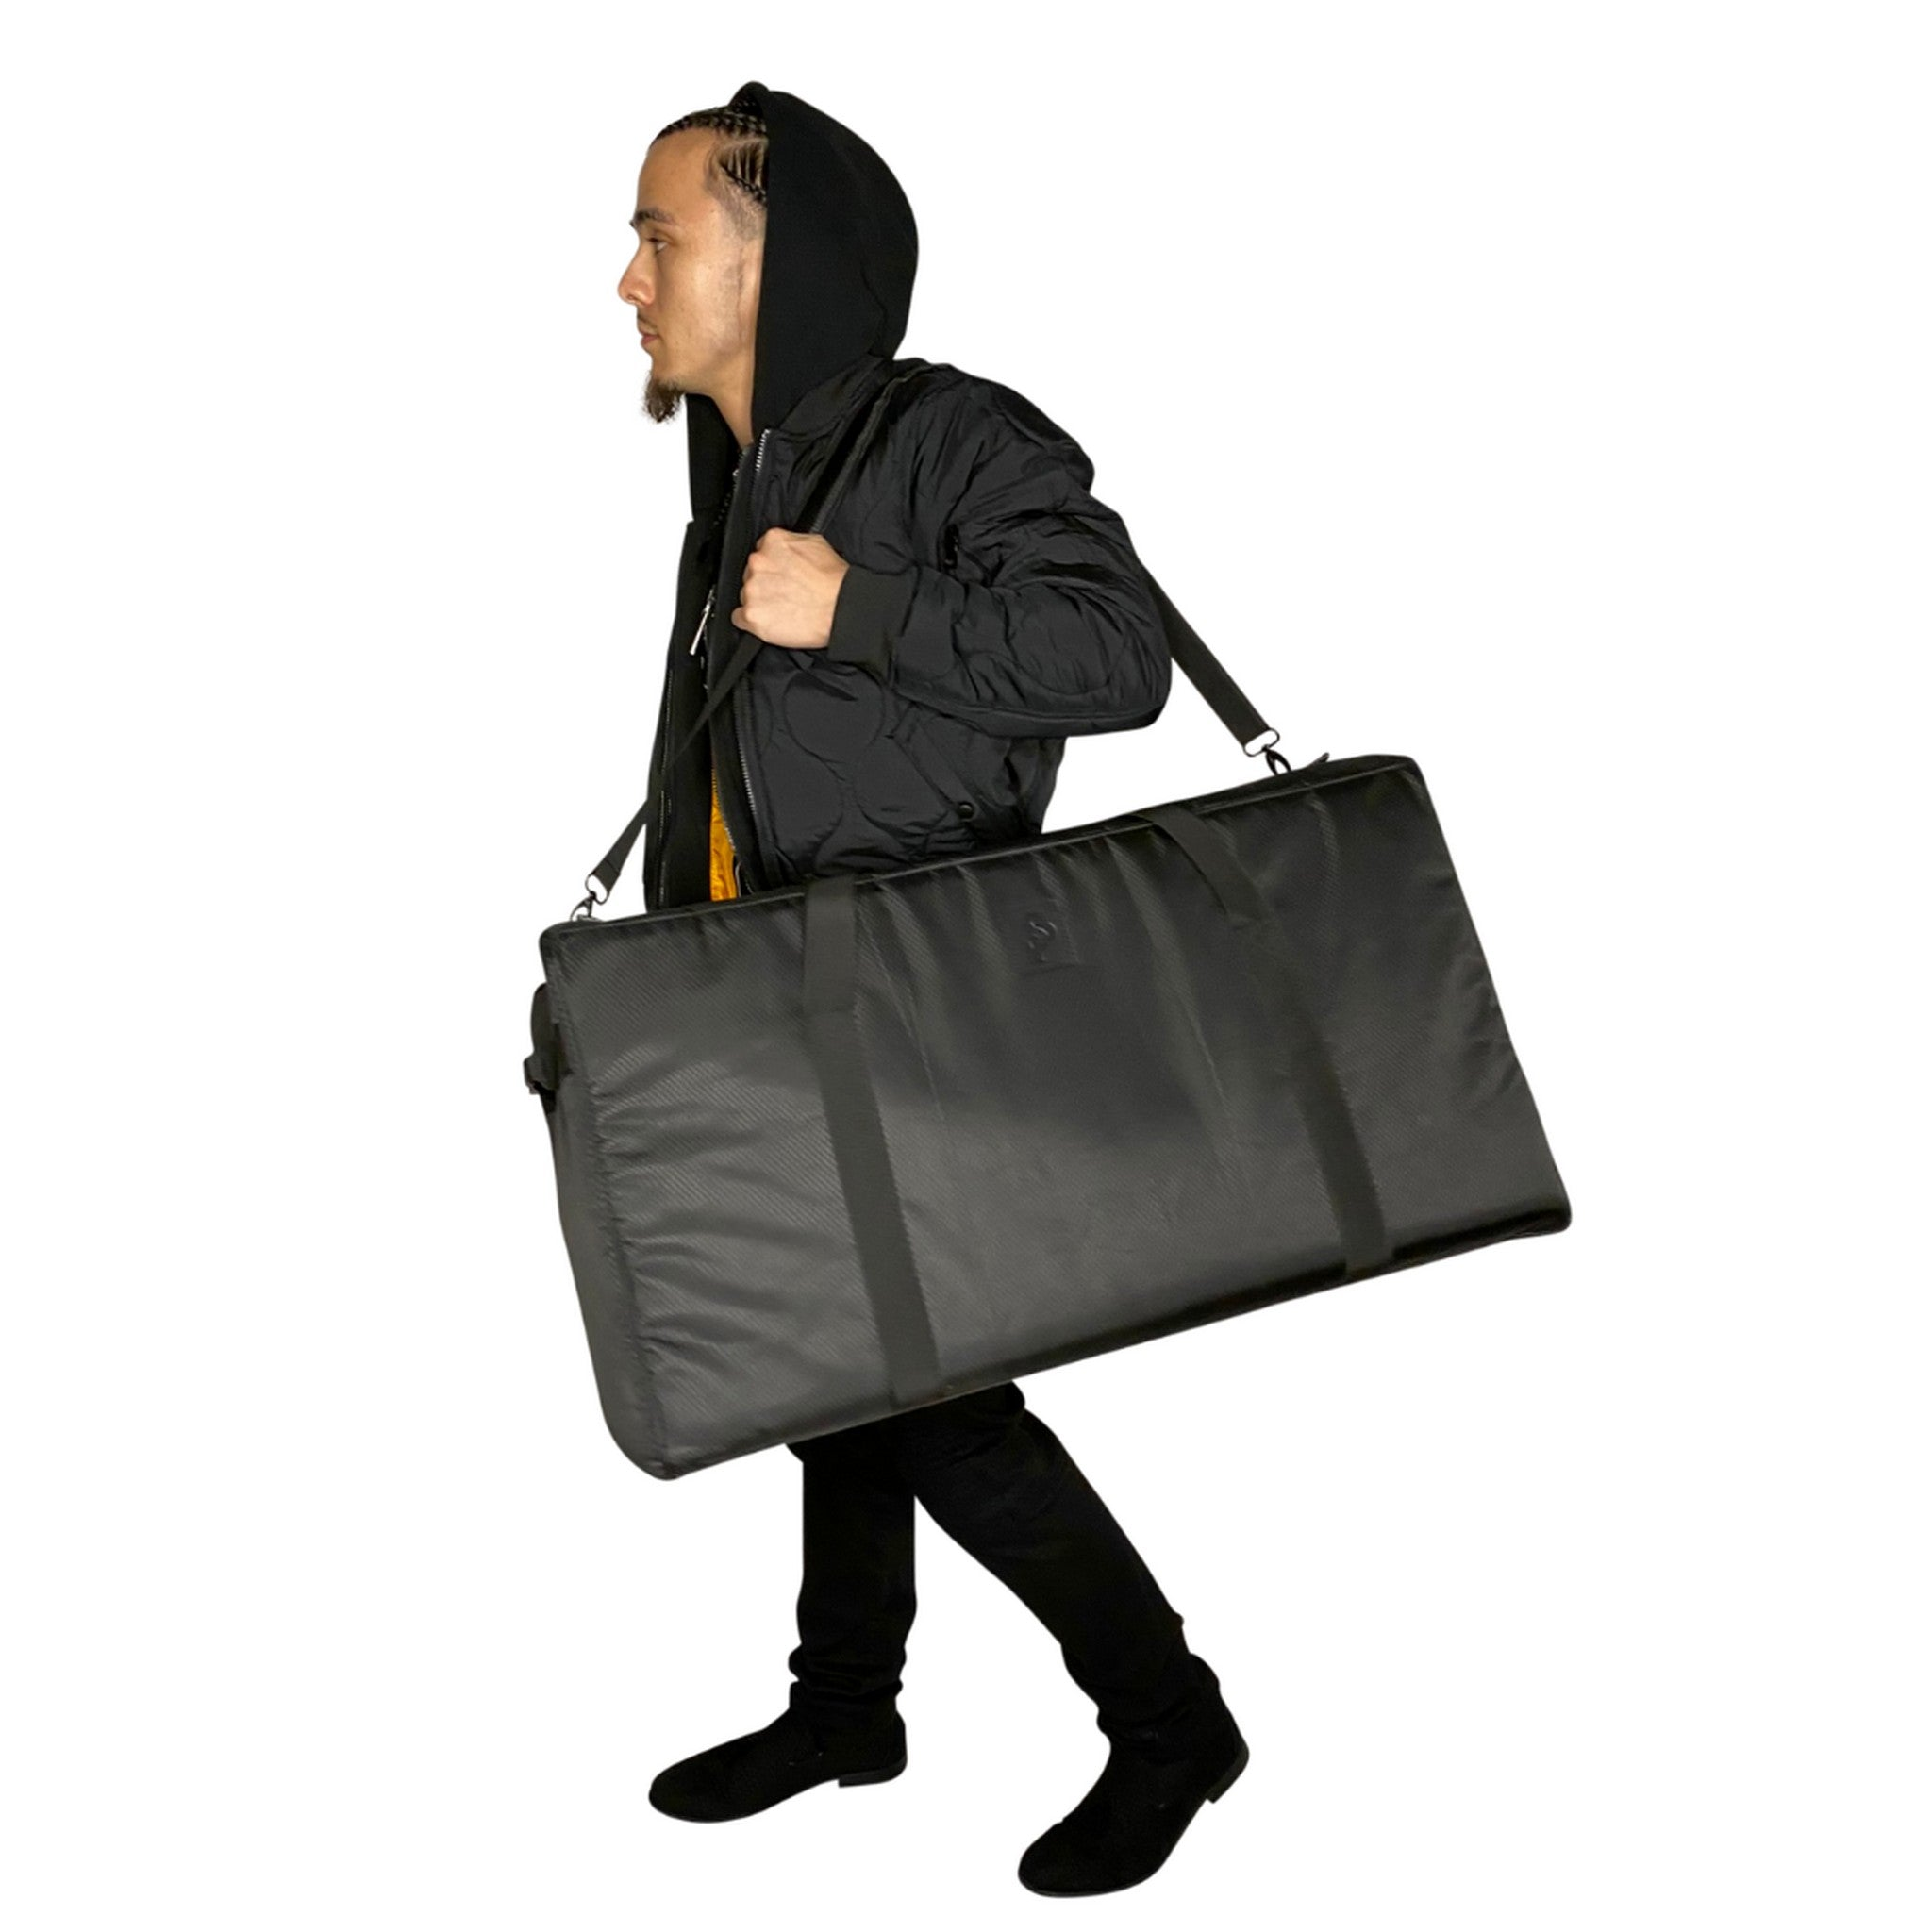 The Trap Duffle (XXL) in Black - Smell Proof Duffle Bag-Duffle Bag-Snoopproofbags